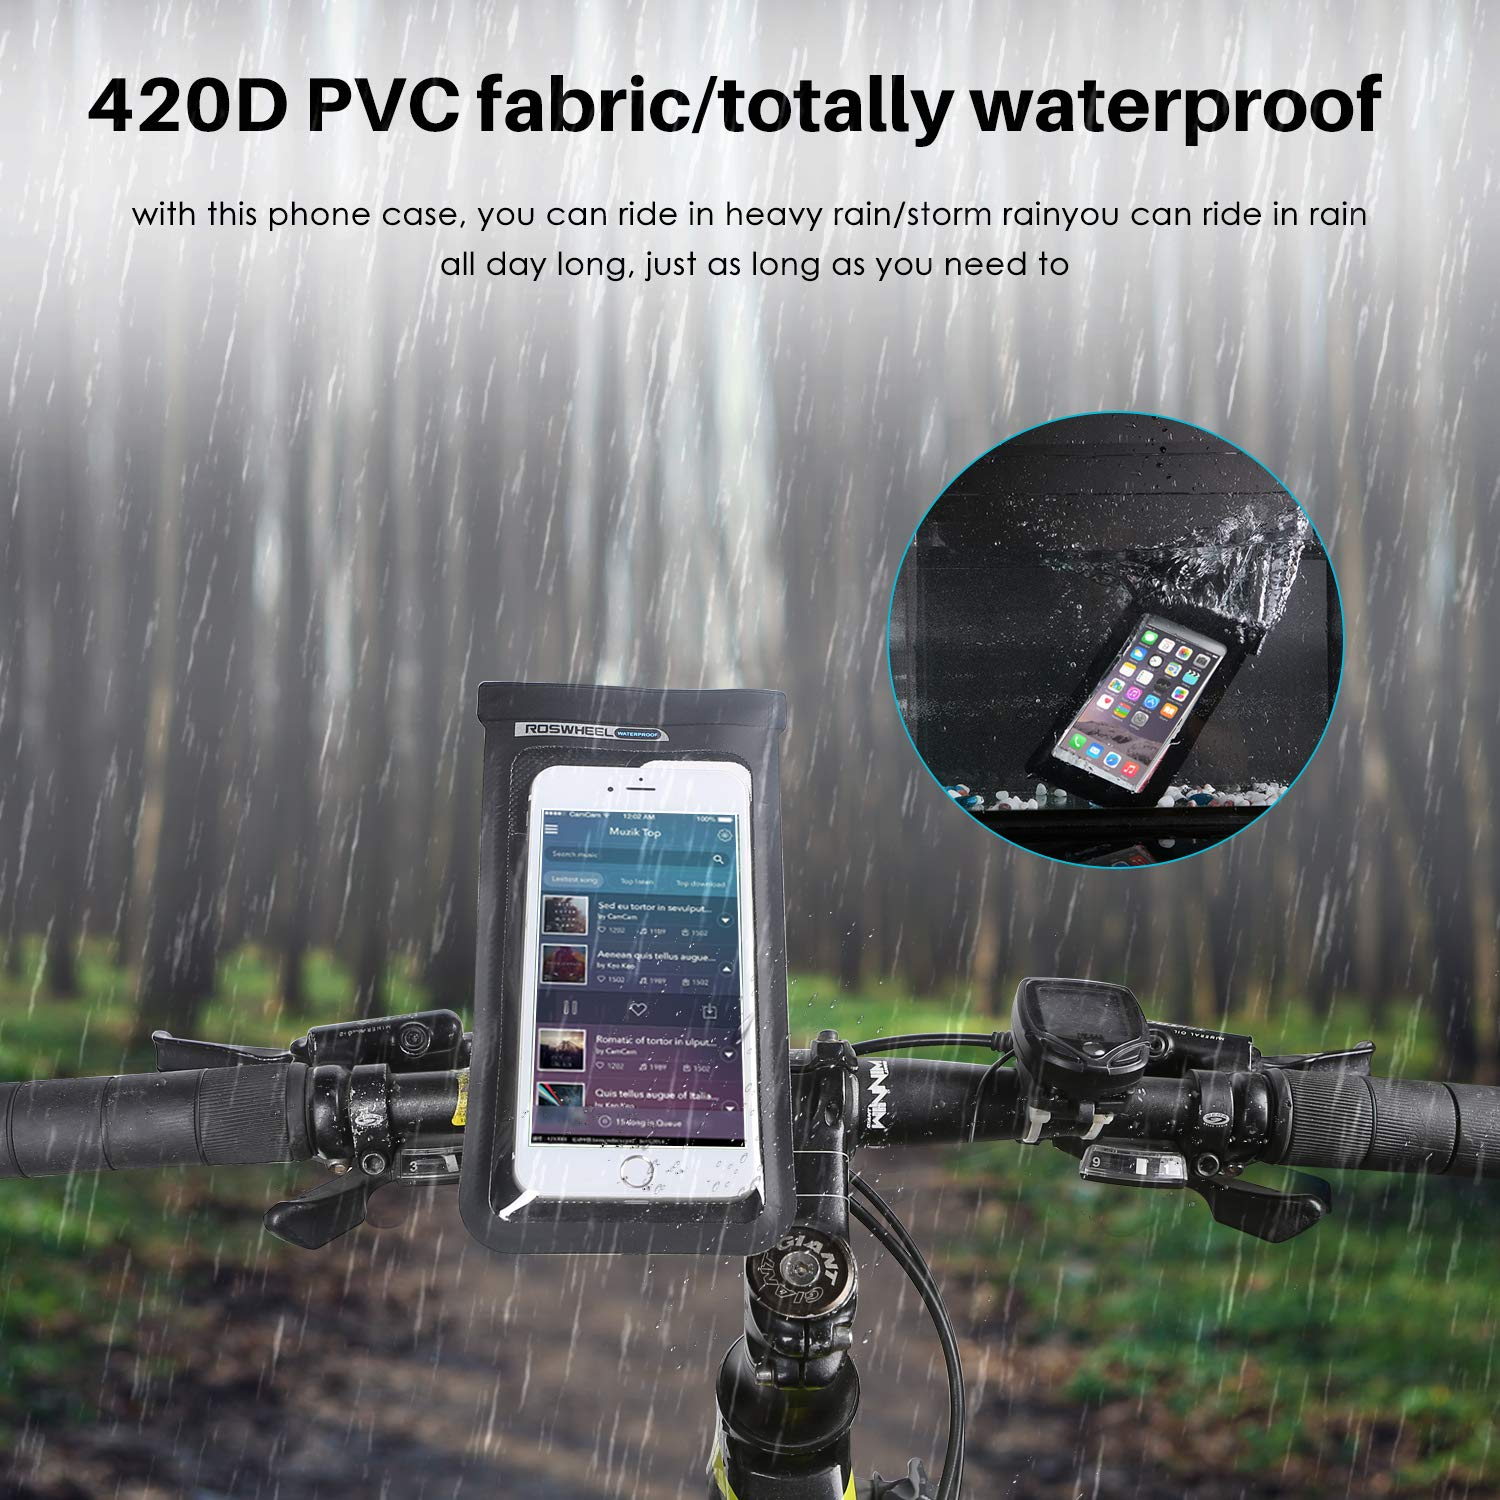 Bike/Bicycle Phone Holder bedee Bike/Bicycle Phone Mount Bike Waterproof Phone Case with Mount Base Touch ID/Screen Friendly Phone Pouch for 4-6 Inch Screen Smartphone Stem Cycling Mount for iPhone X 8 Plus 77 Plus 6 6S Plus Samsung Galaxy